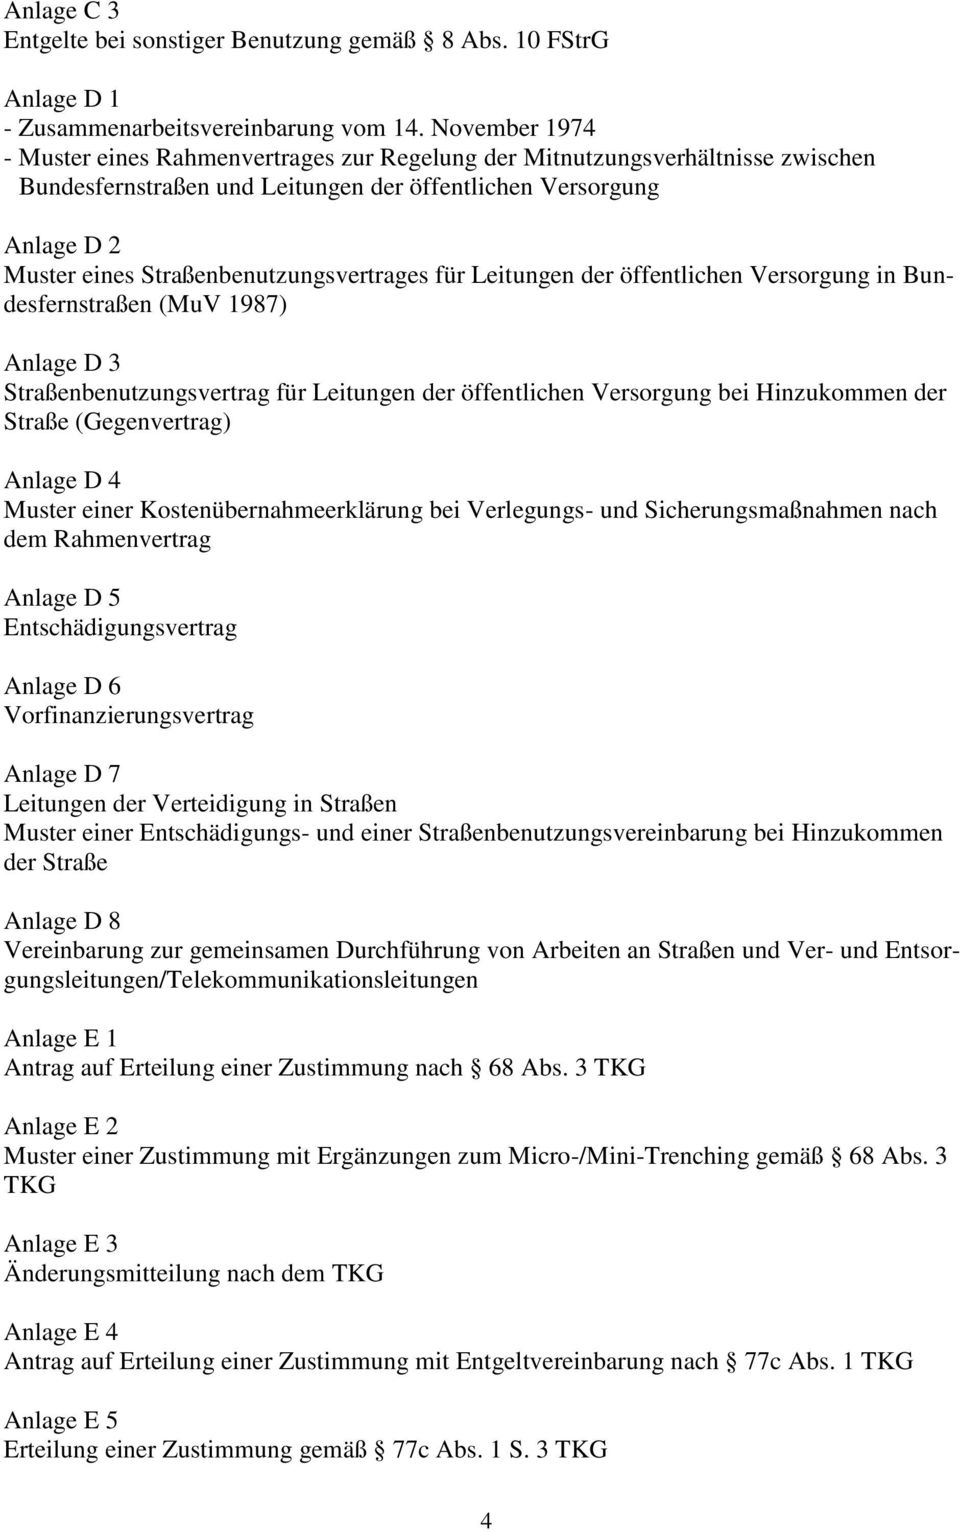 Fein Entschädigungsvereinbarung Vorlage Fotos - Entry Level Resume ...